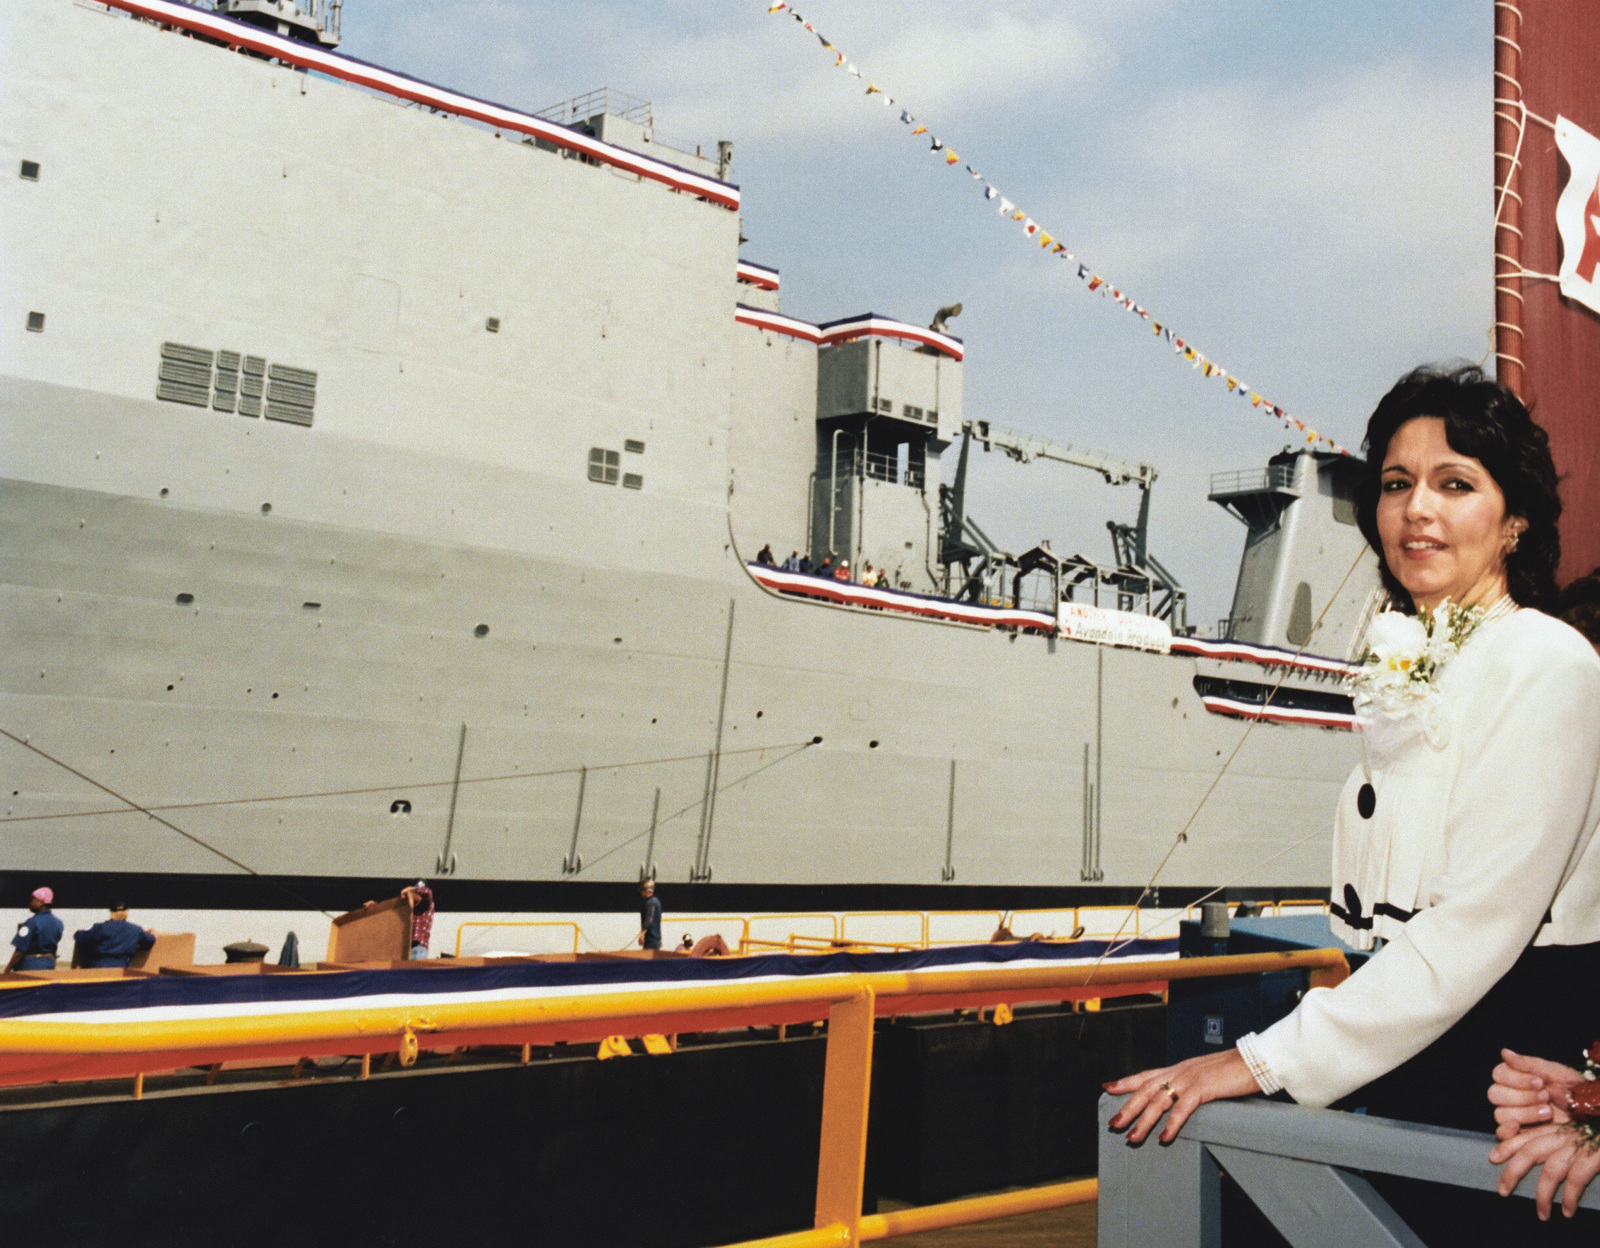 Ships Sponsor, Mrs. Beverly Angello Young, poses with the dock landing ship PEARL HARBOR (LSD-52) afloat in the Mississippi River at the conclusion of the christening and launch ceremony at Avondale Industries, Inc. Shipyards Division